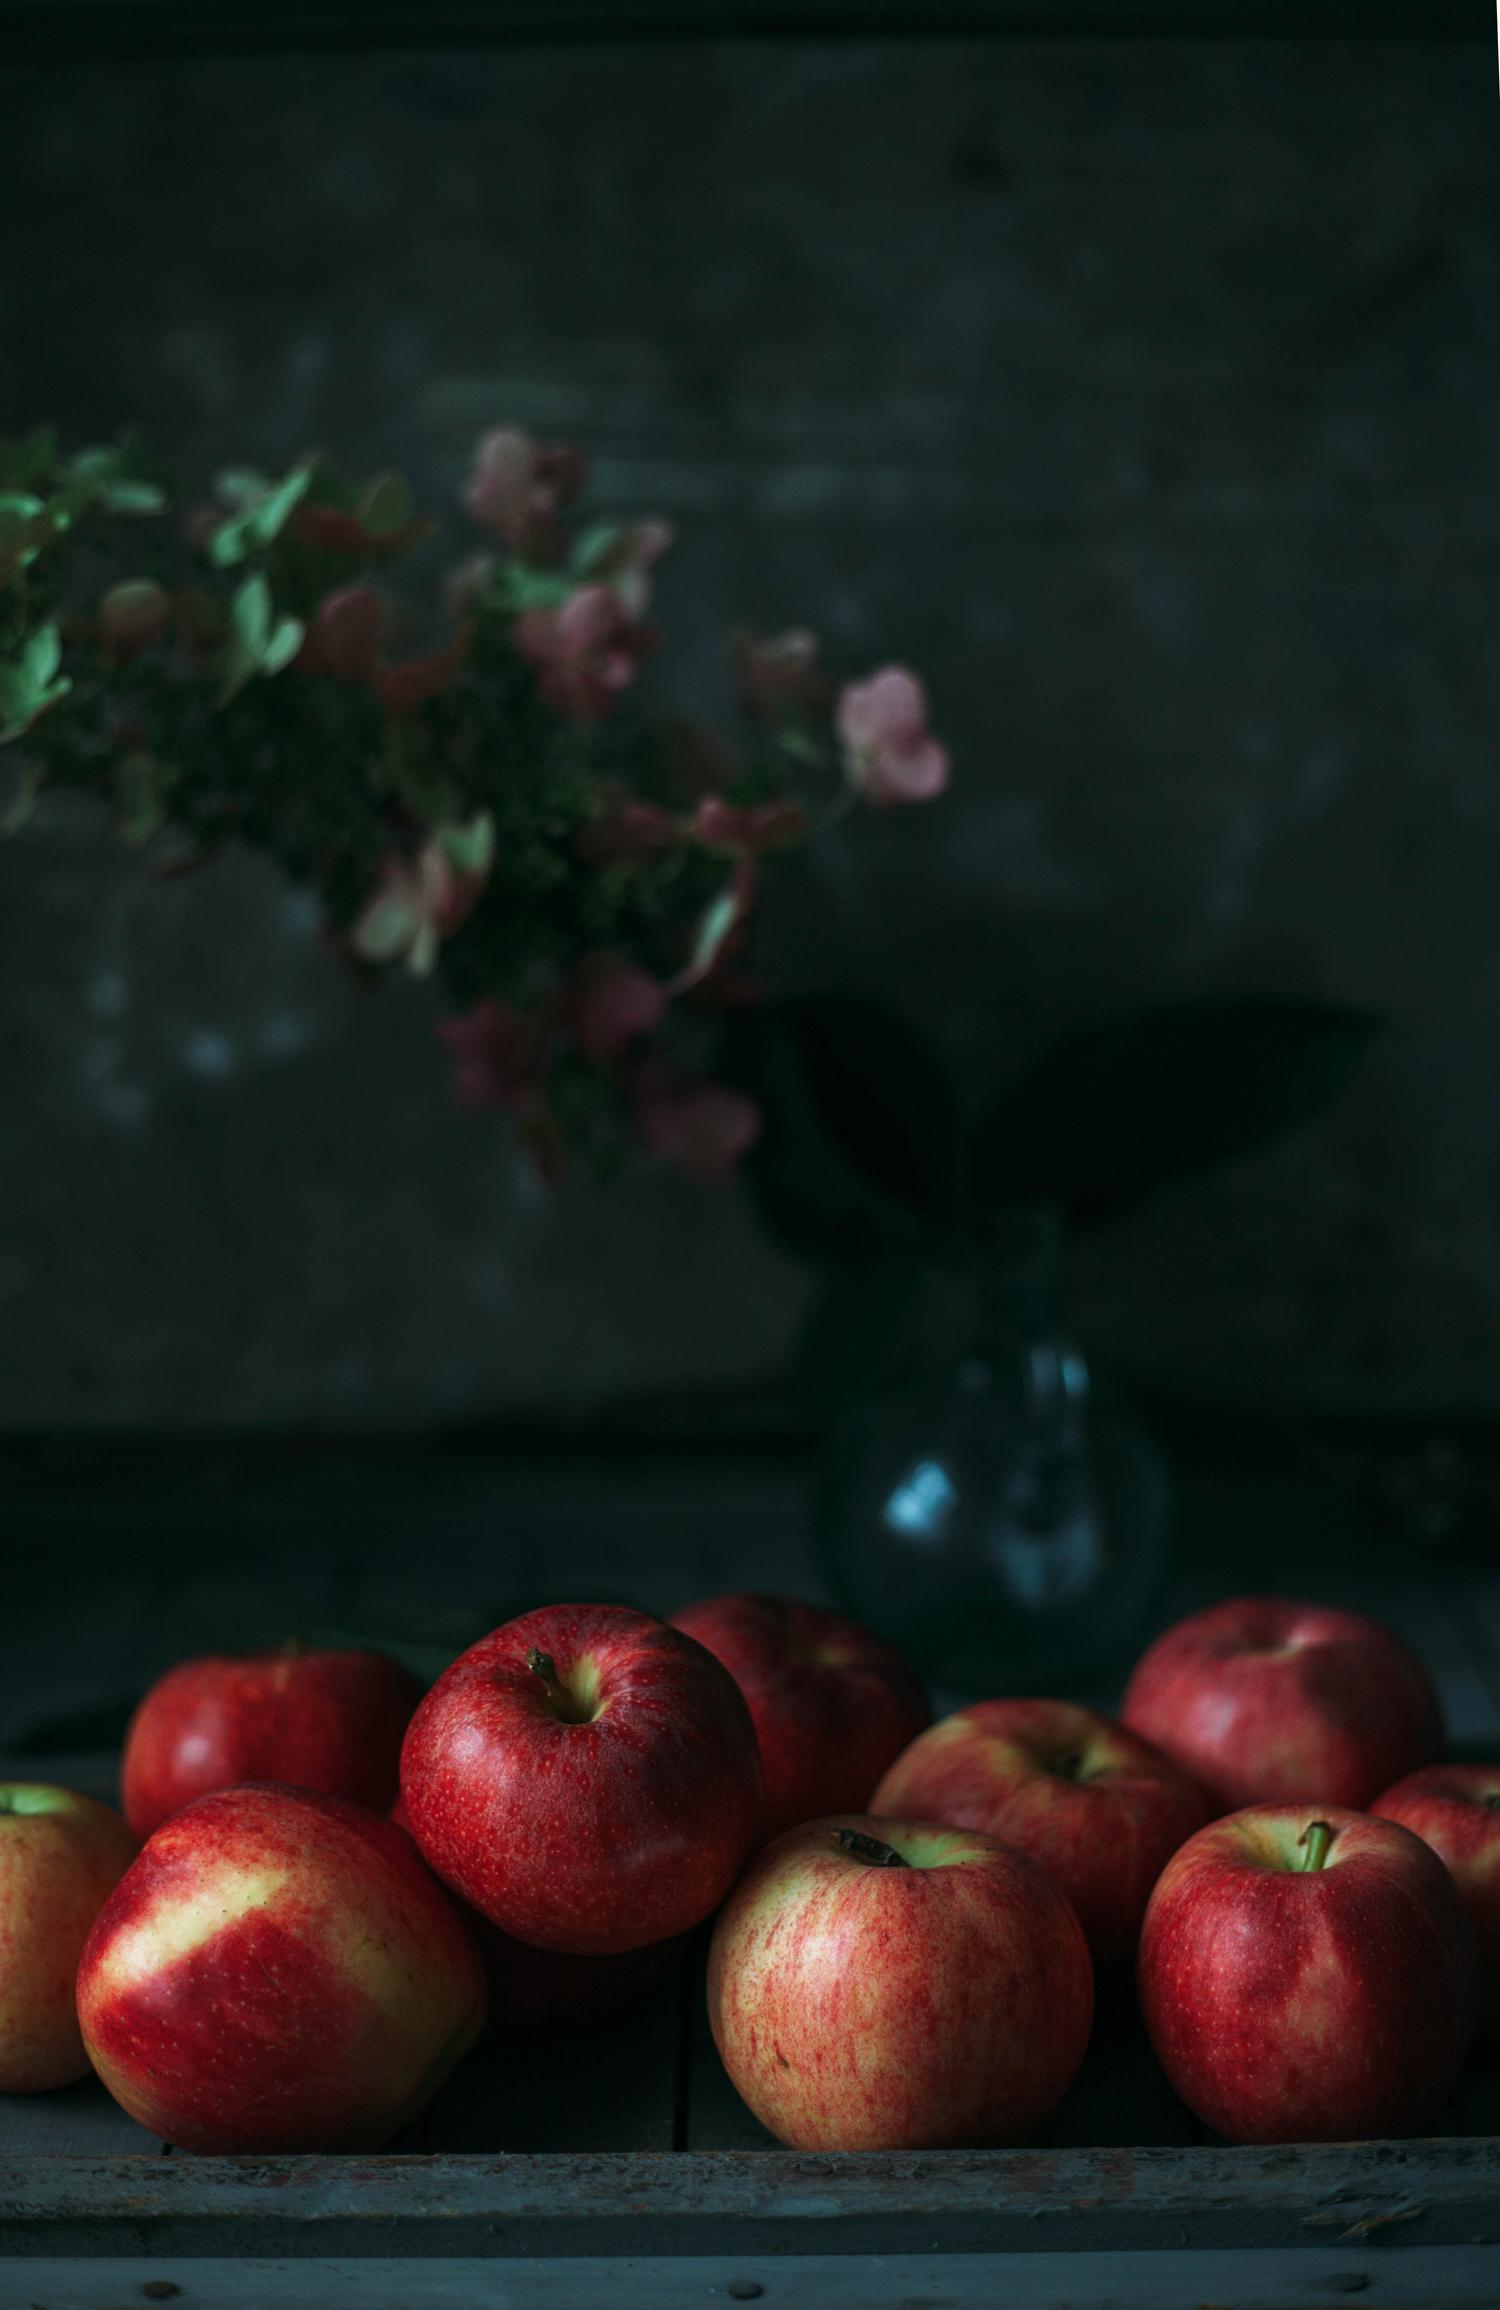 Apples and tomatillos - image 2 - student project